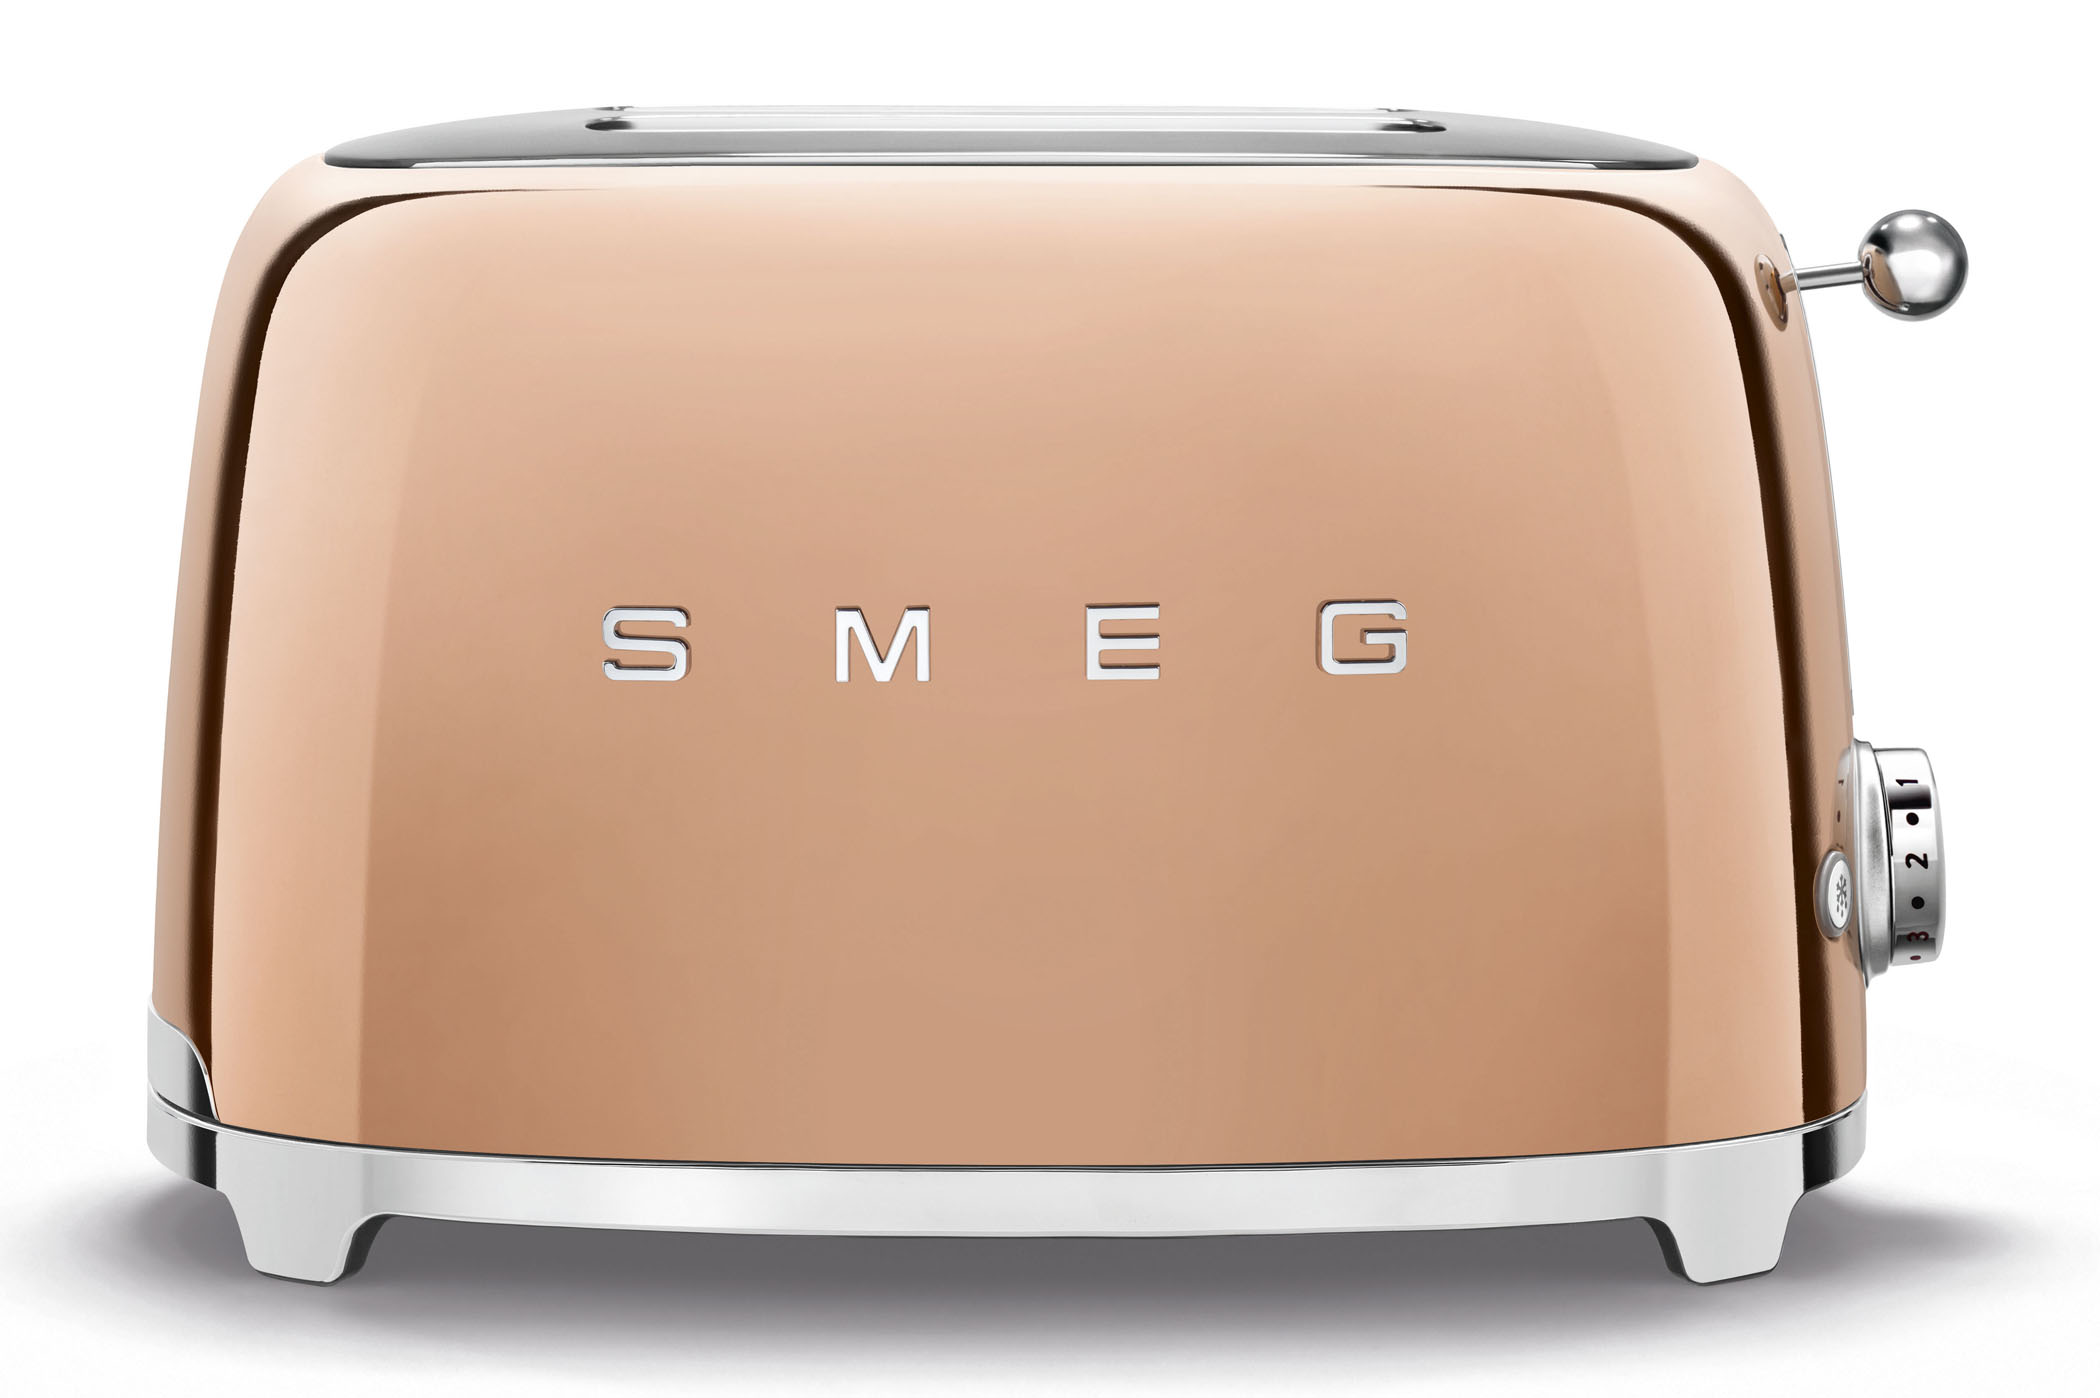 <h1>Smeg Toaster TSF01</h1><h3 style='font-size: 20px; margin: 0px 0px 15px 0px;'> - Retro Toaster in funkelnder Gold- und Rosegold-Optik</h3>